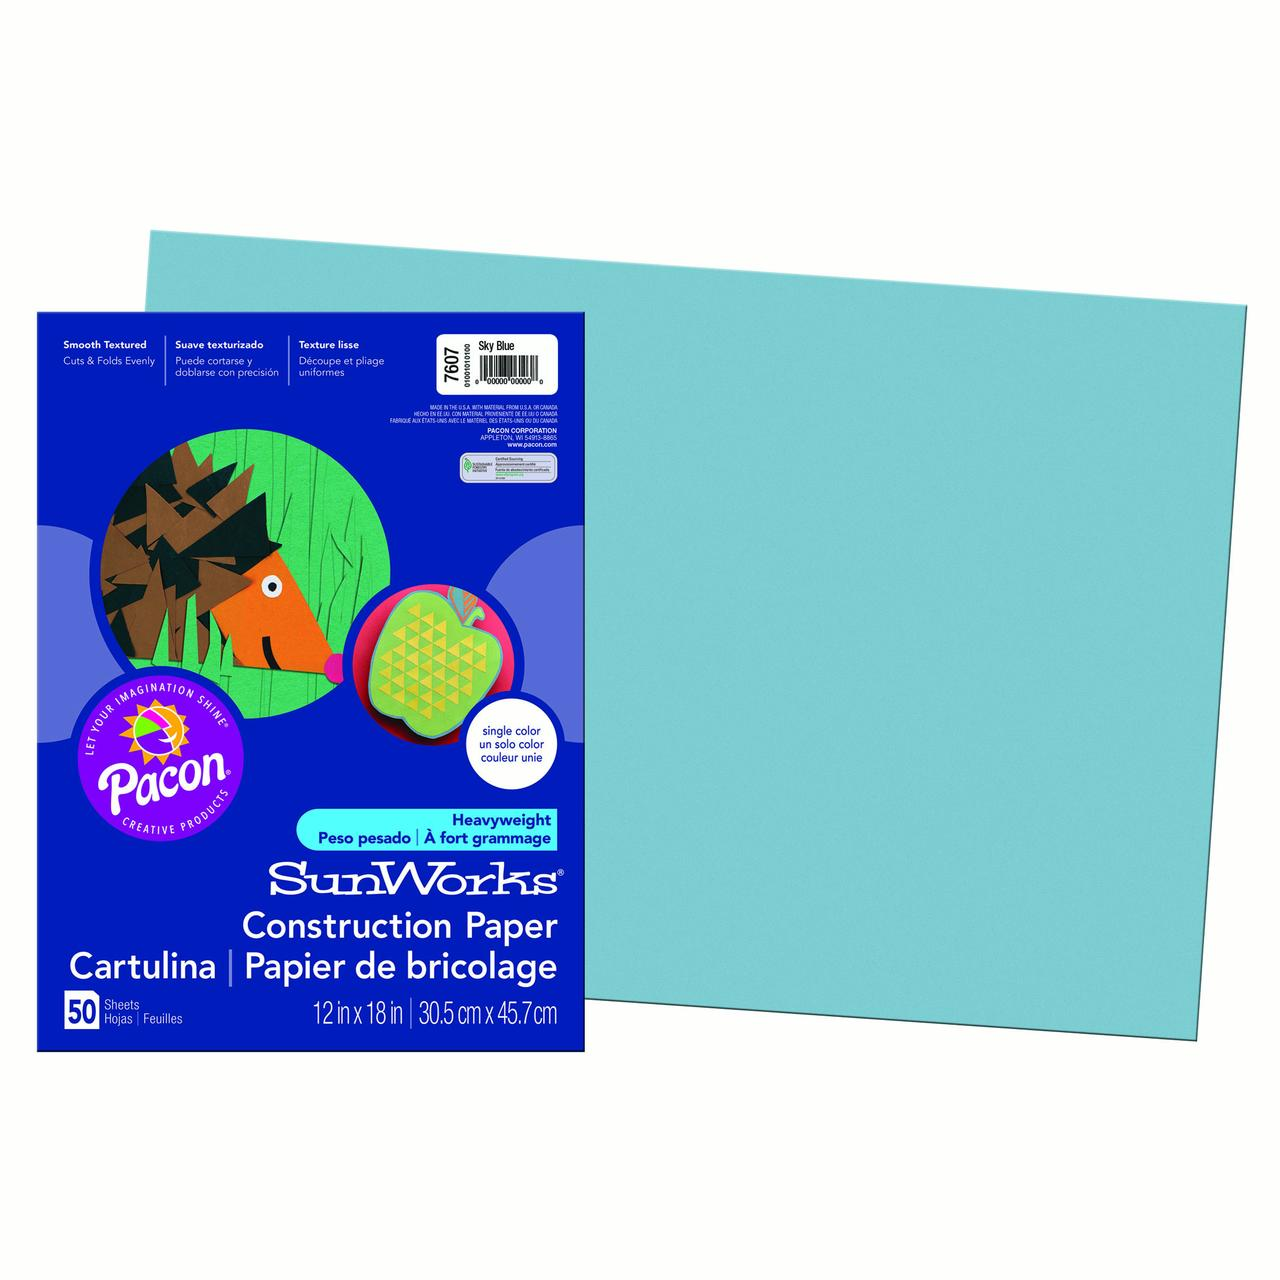 "Pacon® SunWorks® Construction Paper, 12"" x 18"", Sky Blue - 50 Sheets per pack, 10 packs"